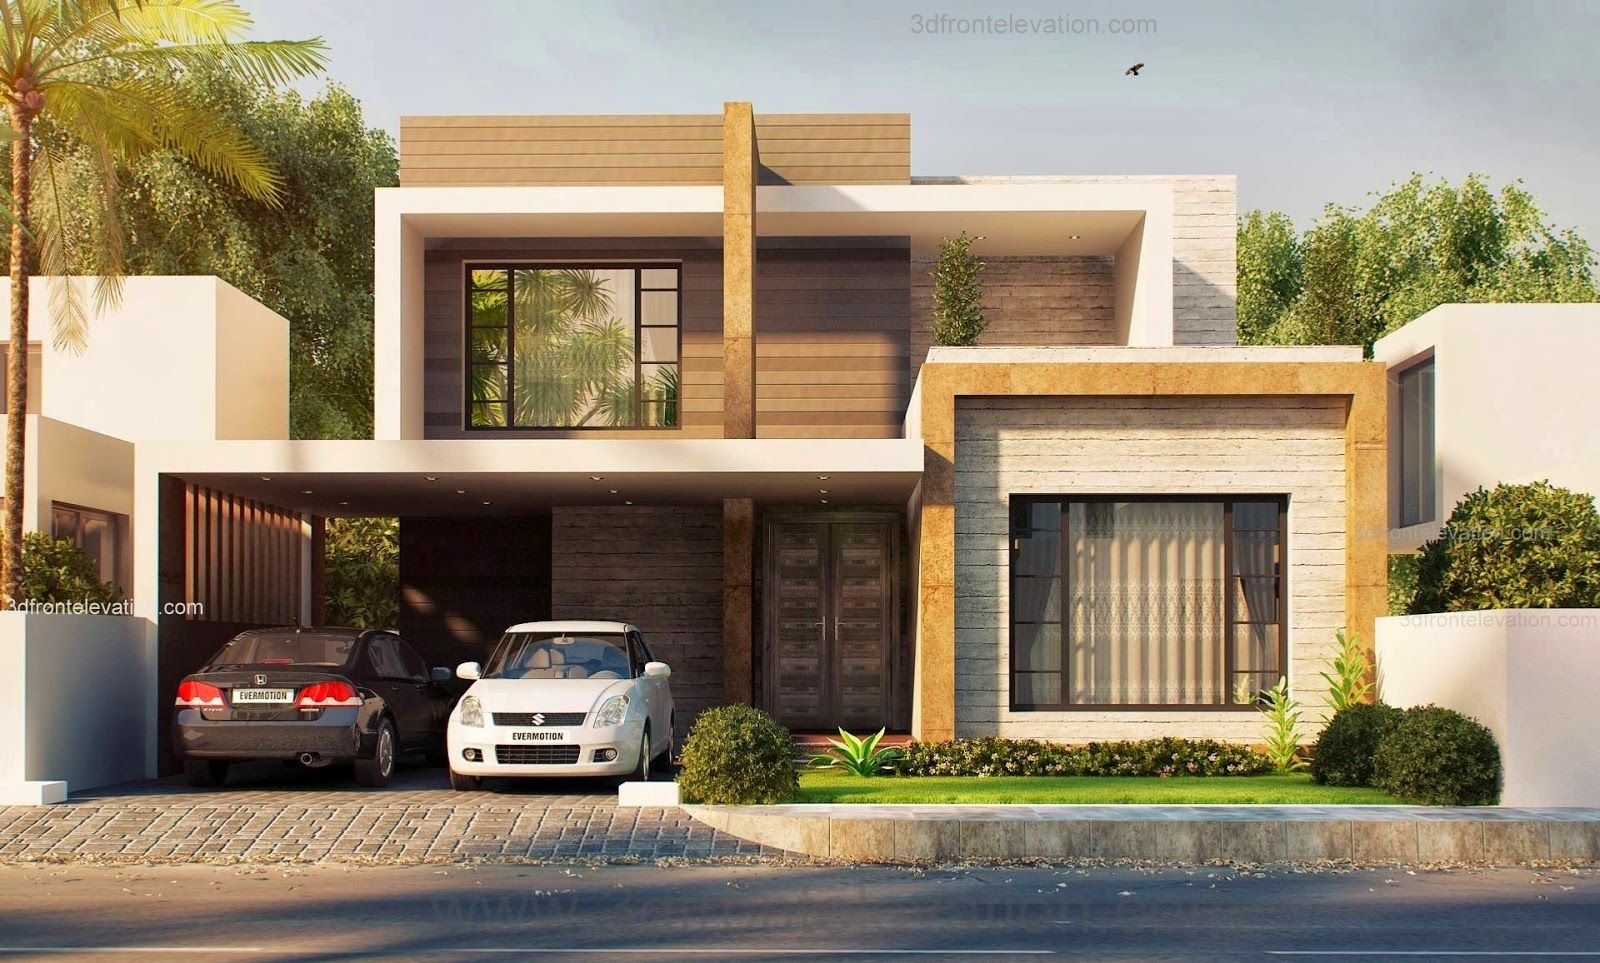 10 marla modern house plan beautiful latest pakistani design for pinterest - Home design pic ...